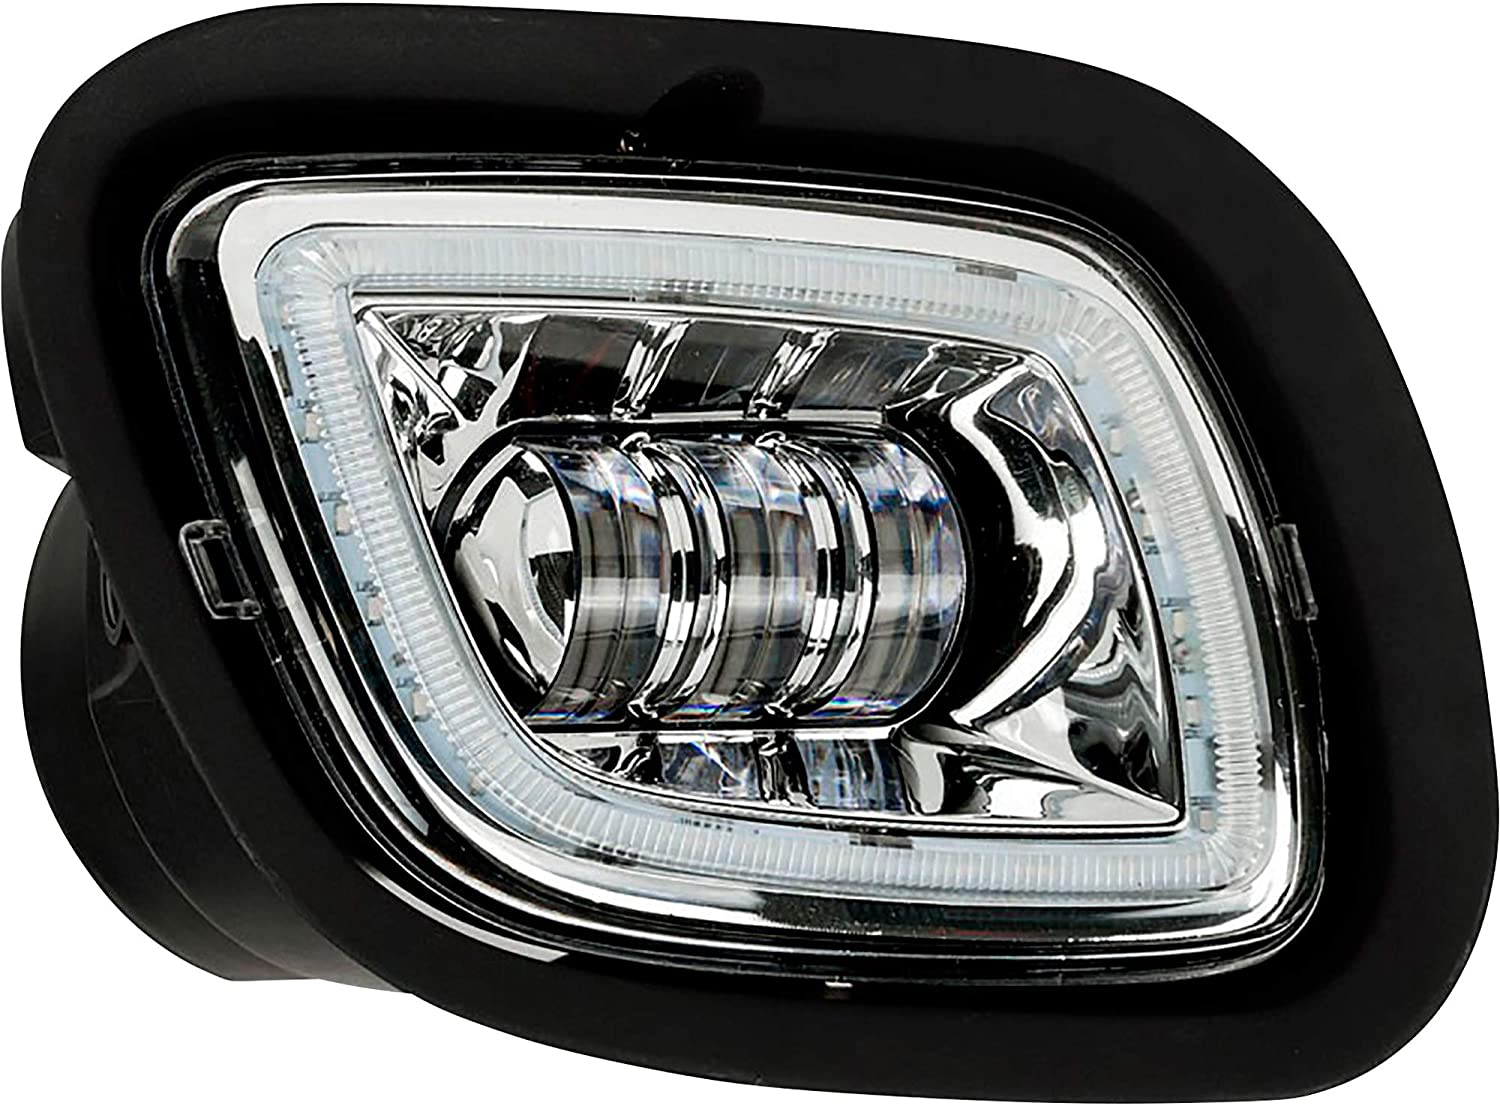 Trux Accessories TLED-H29 Freightliner Cascadia LED Fog/Driving Light - 3000 Lumens (6 Diodes) - Chrome - Passenger